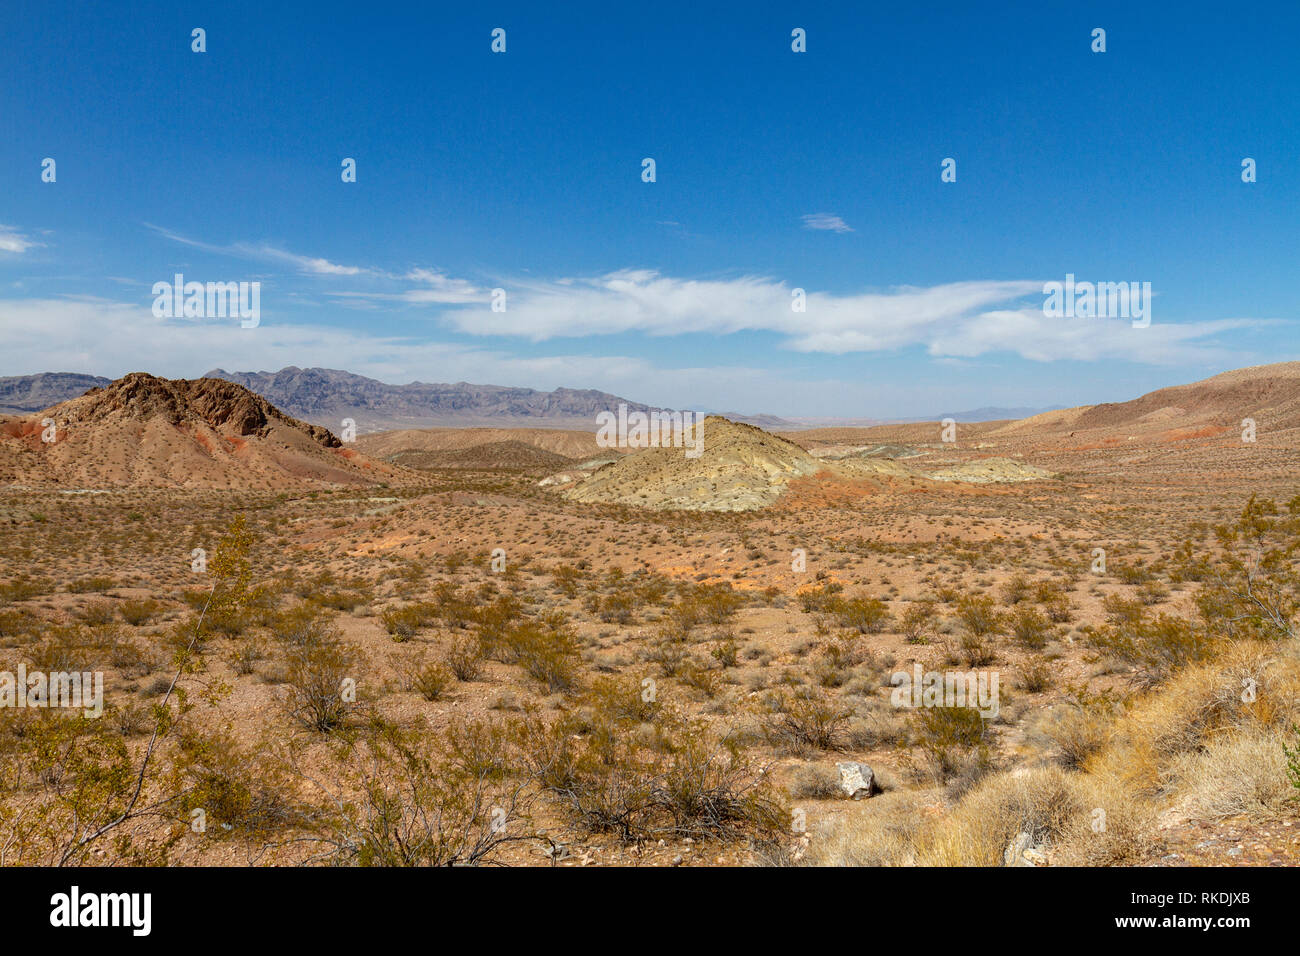 View north from the NV-167 (Northshore Road), Lake Mead Recreation Area, Nevada, United States. - Stock Image